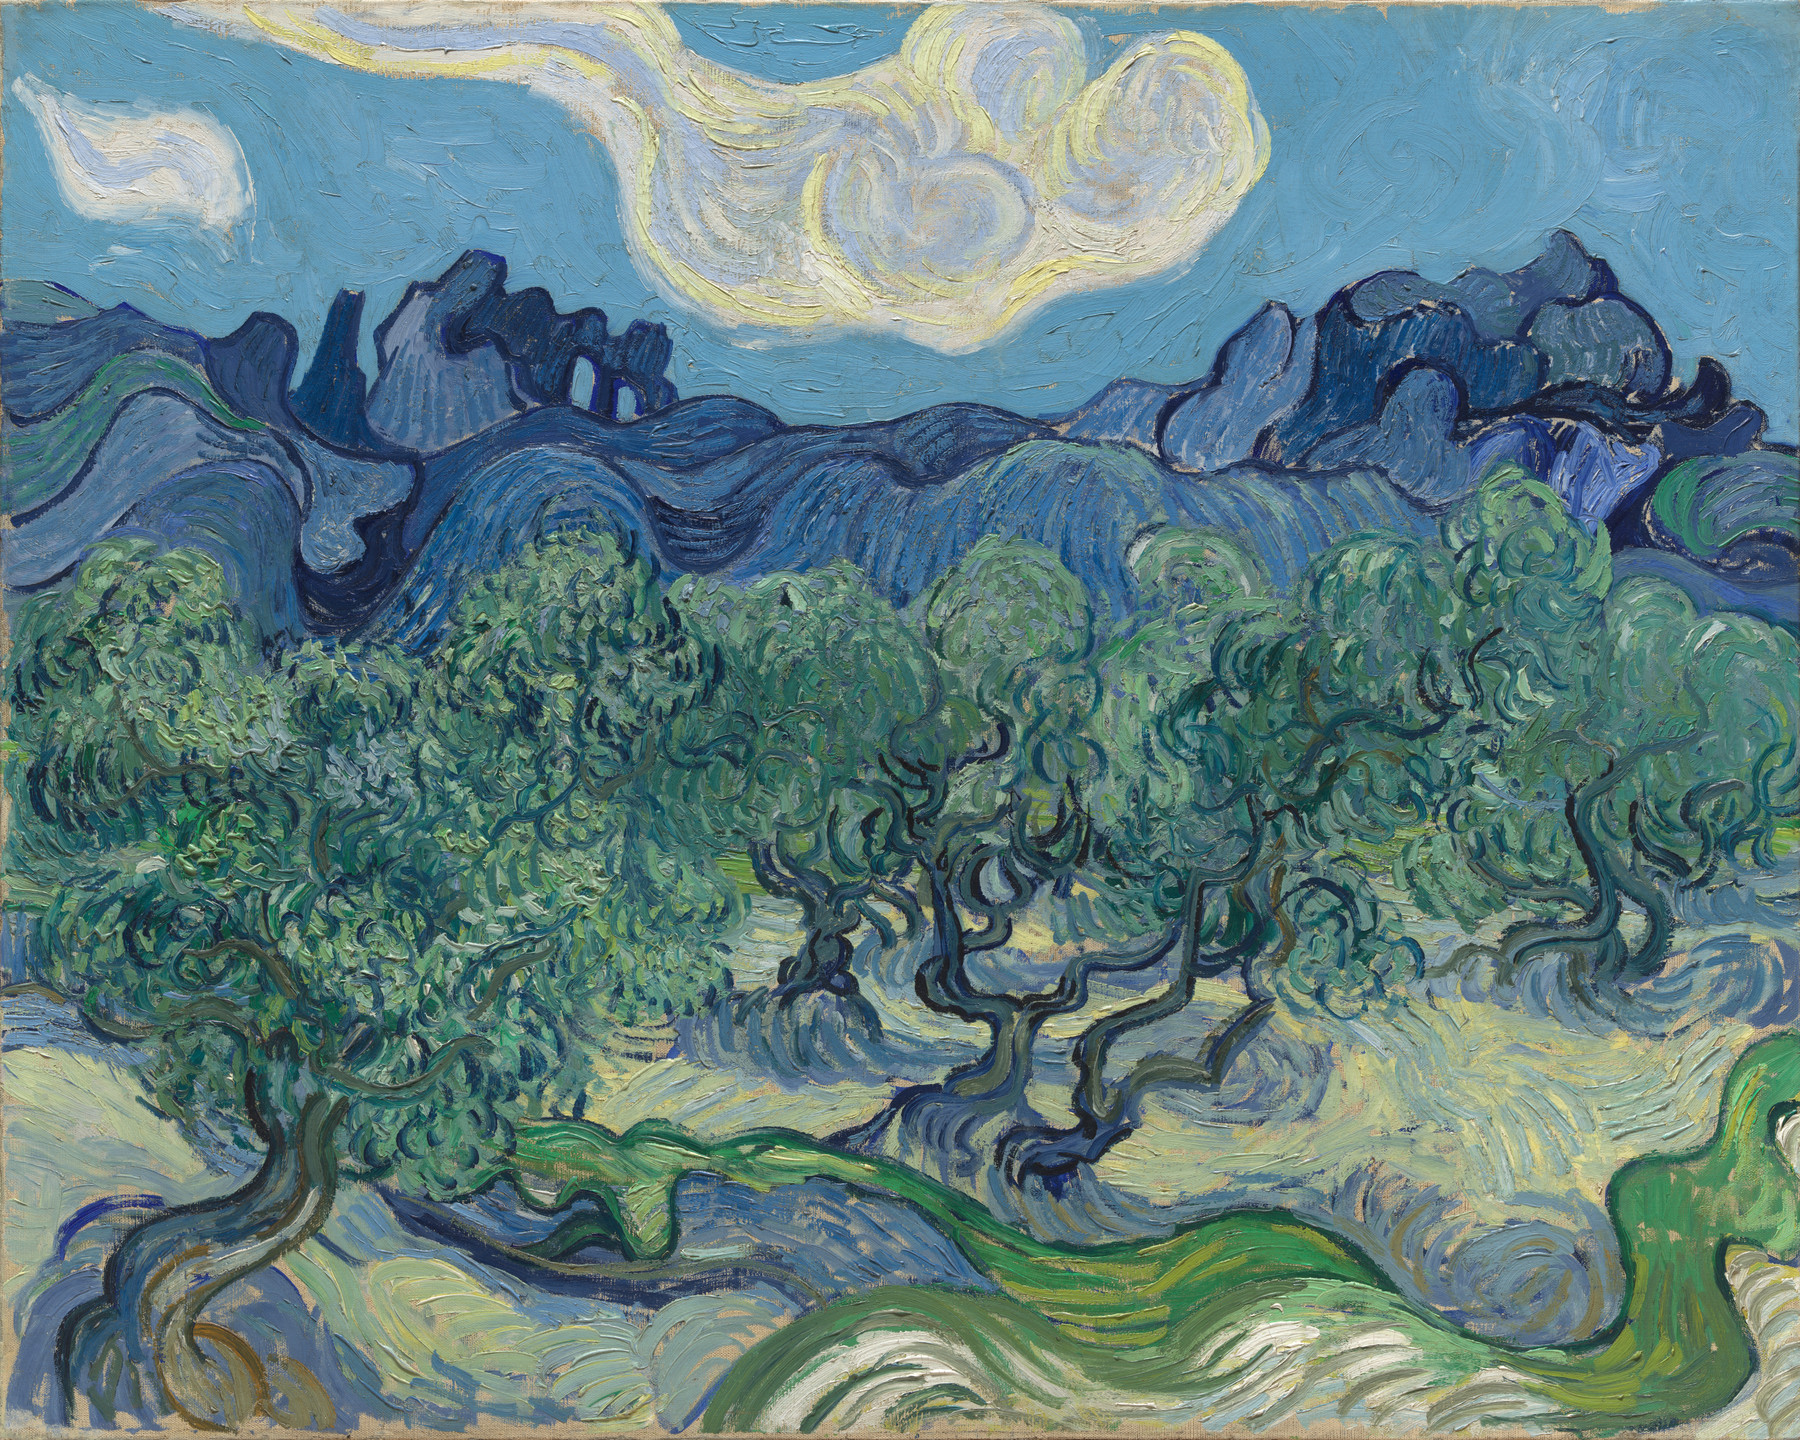 Vincent van Gogh. The Olive Trees. Saint Rémy, June-July 1889